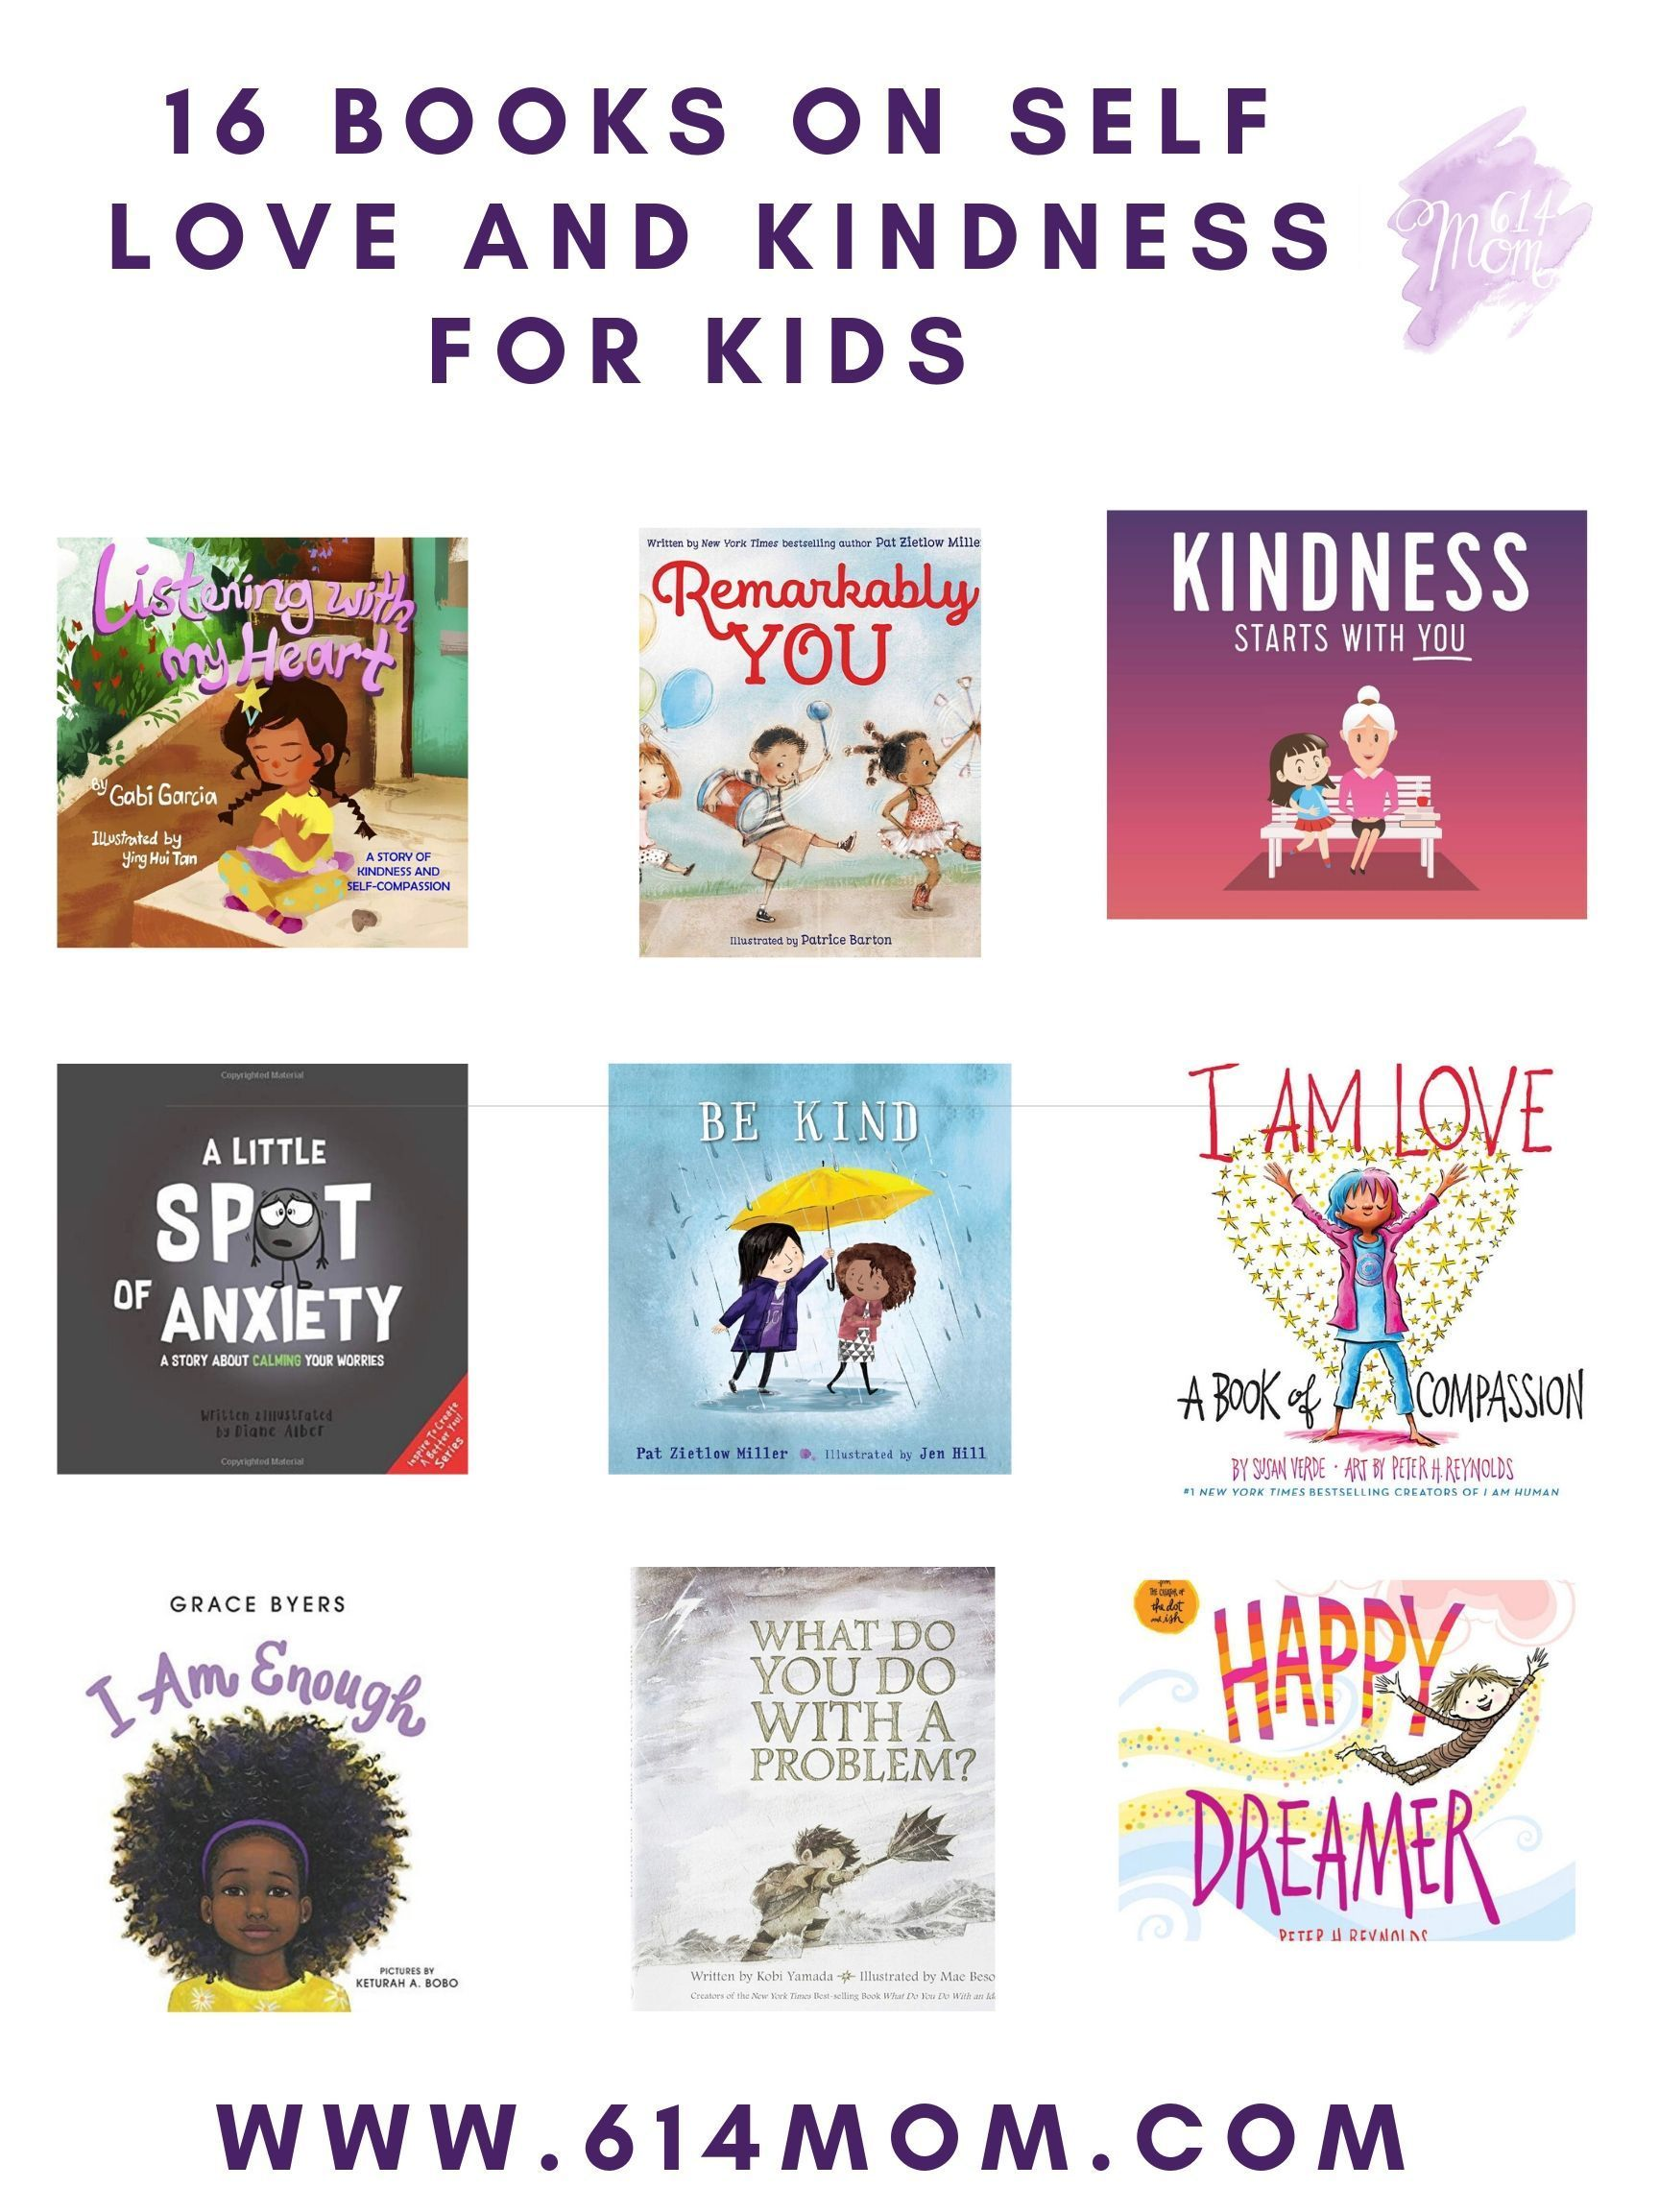 16 Books On Kindness And Self Love For Kids